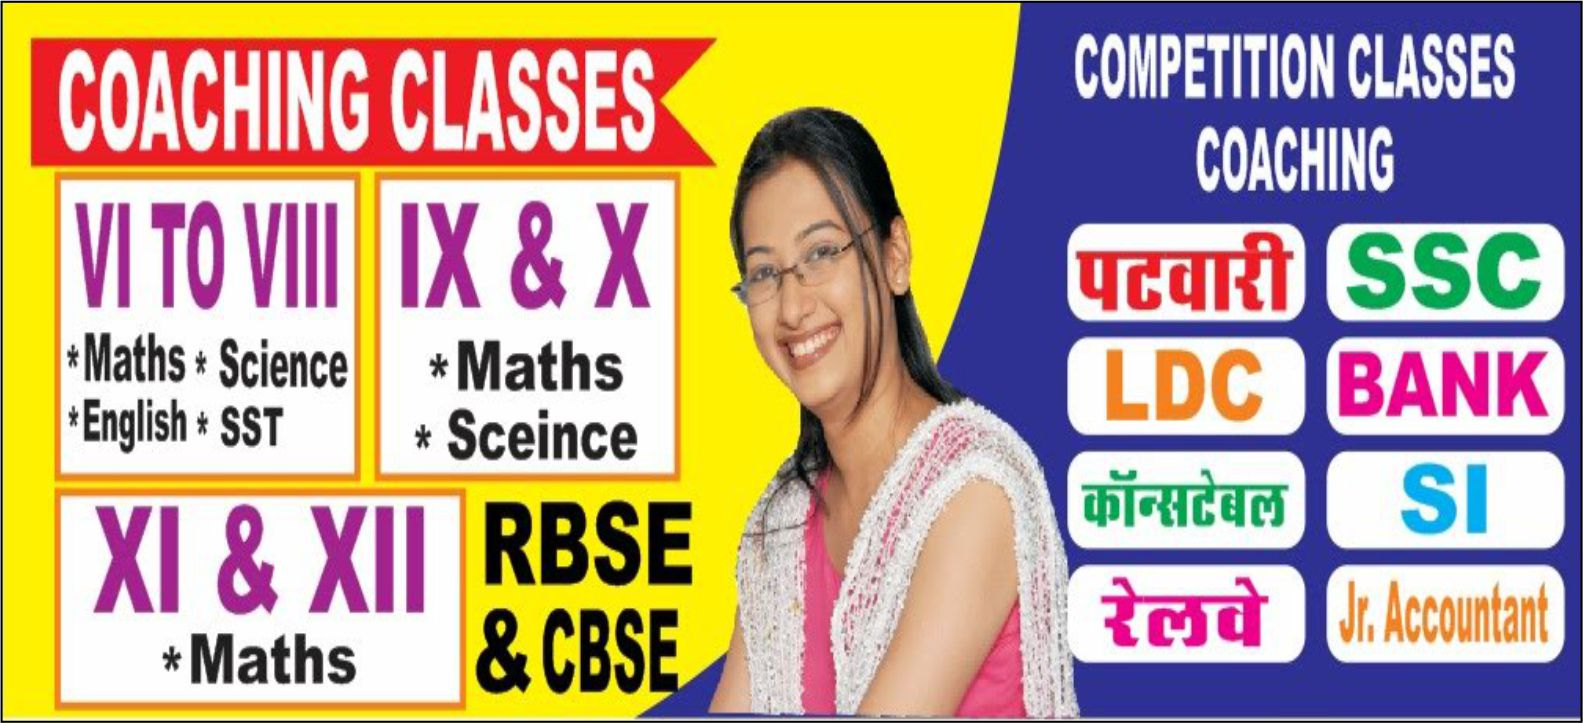 Coaching Classes udaipur - Career Planet Computer Education